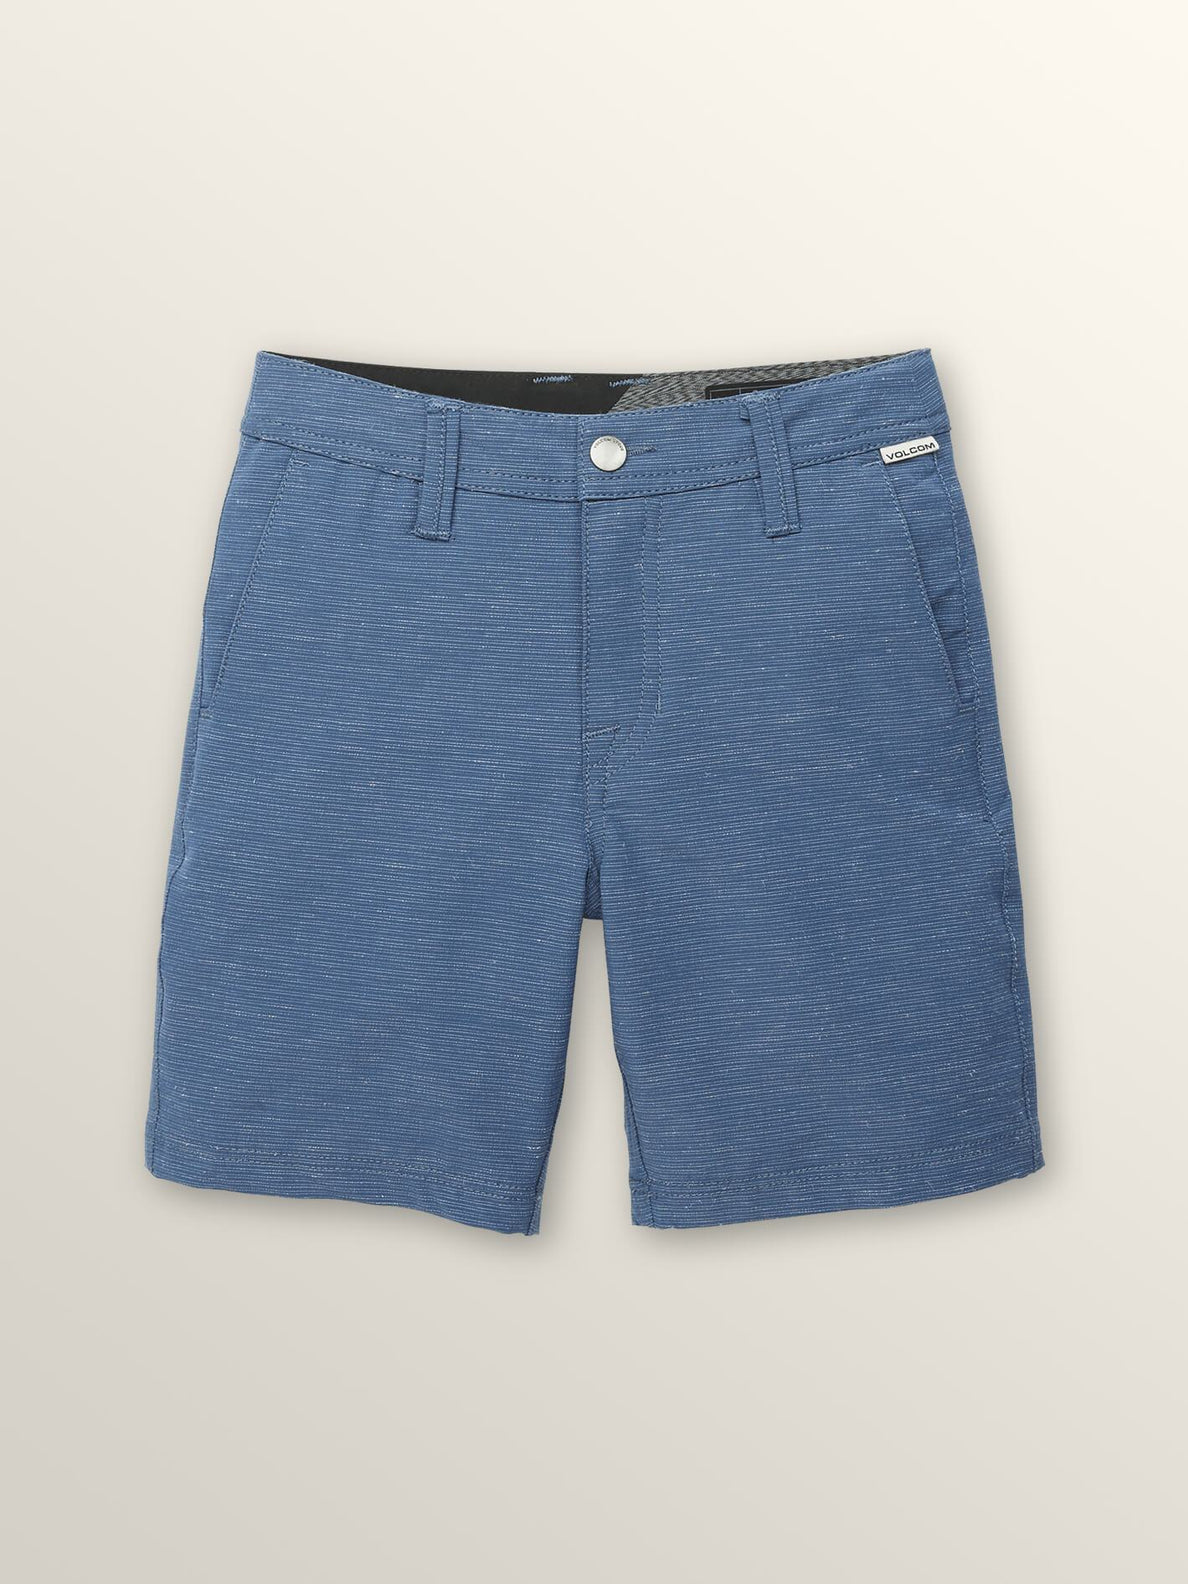 Little Boys Frickin Surf 'N Turf Slub Hybrid Shorts In Deep Water, Front View